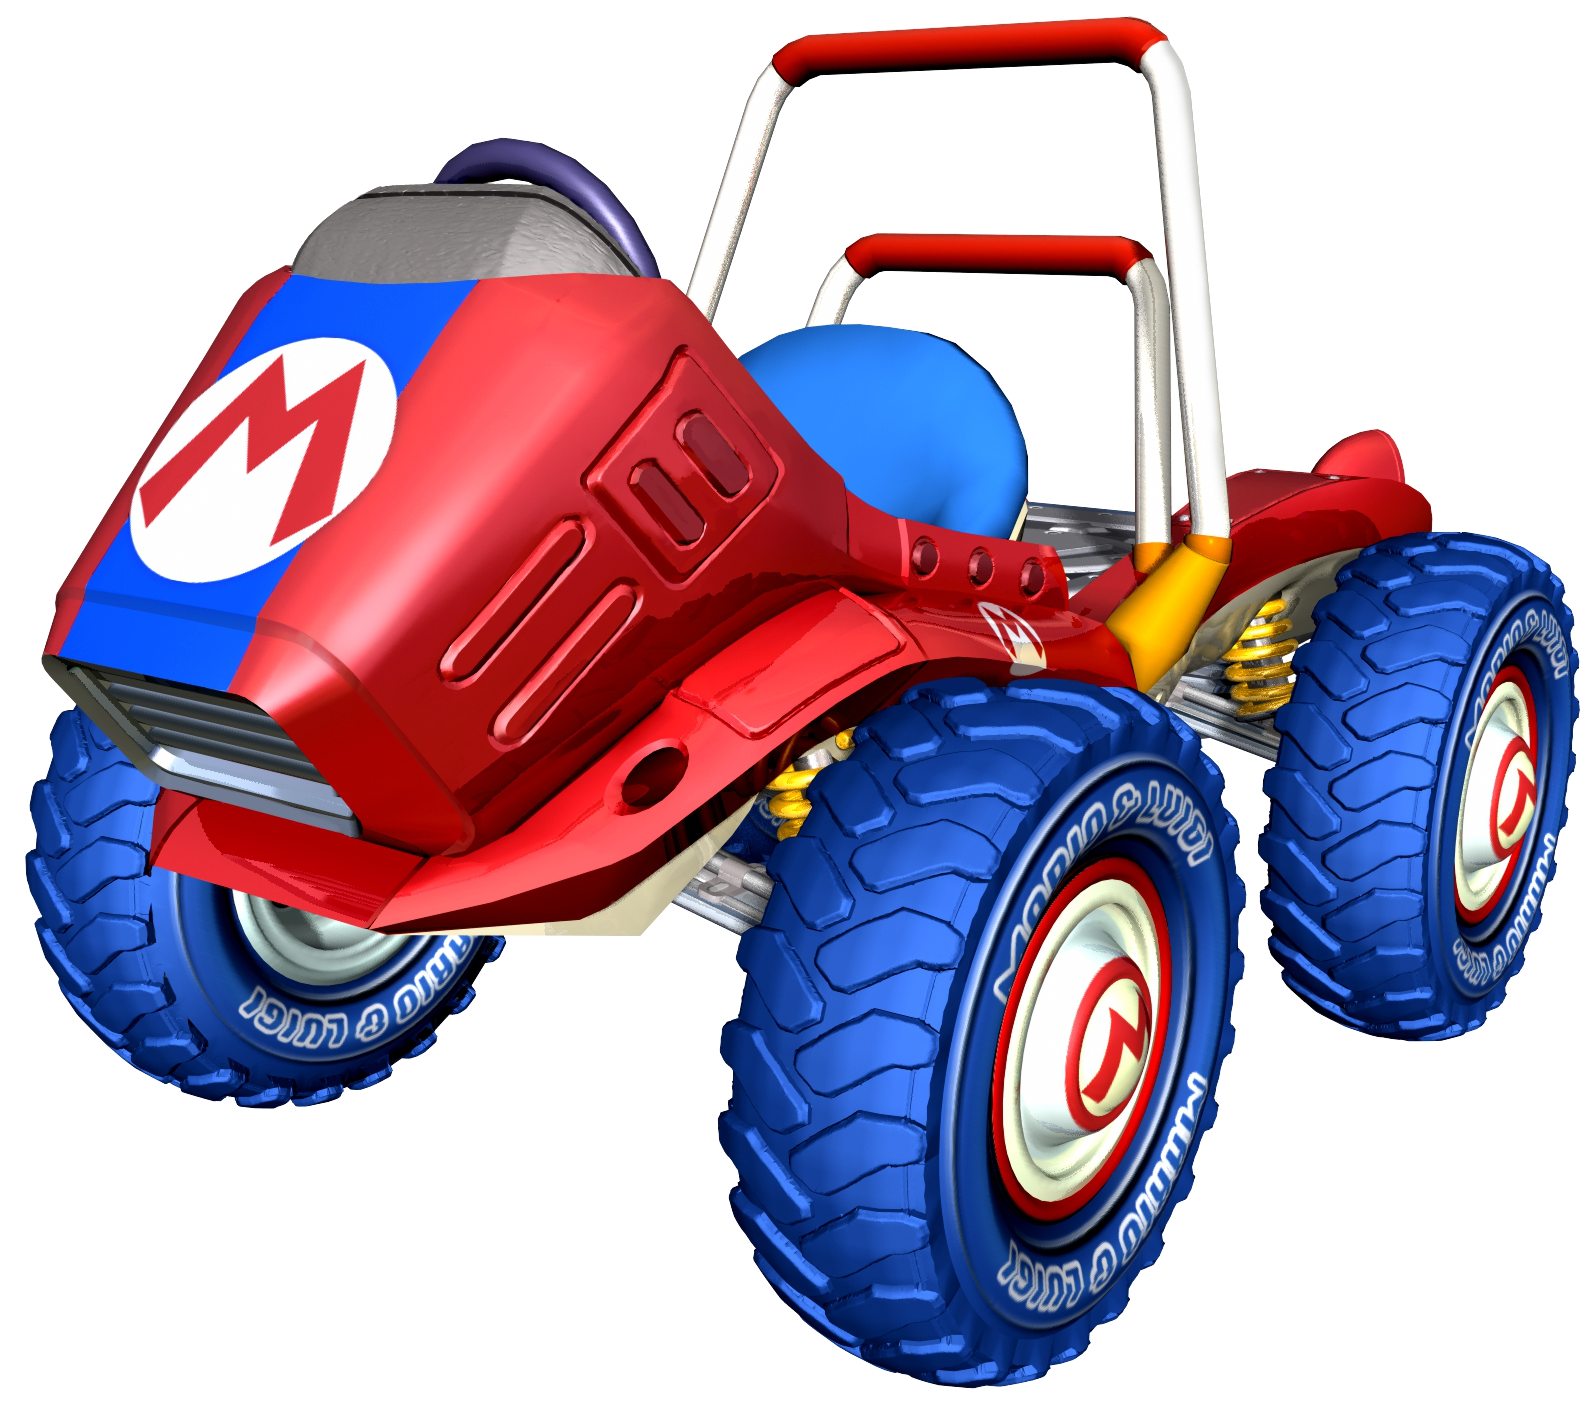 Mario kart double dash png. Image red fire artwork